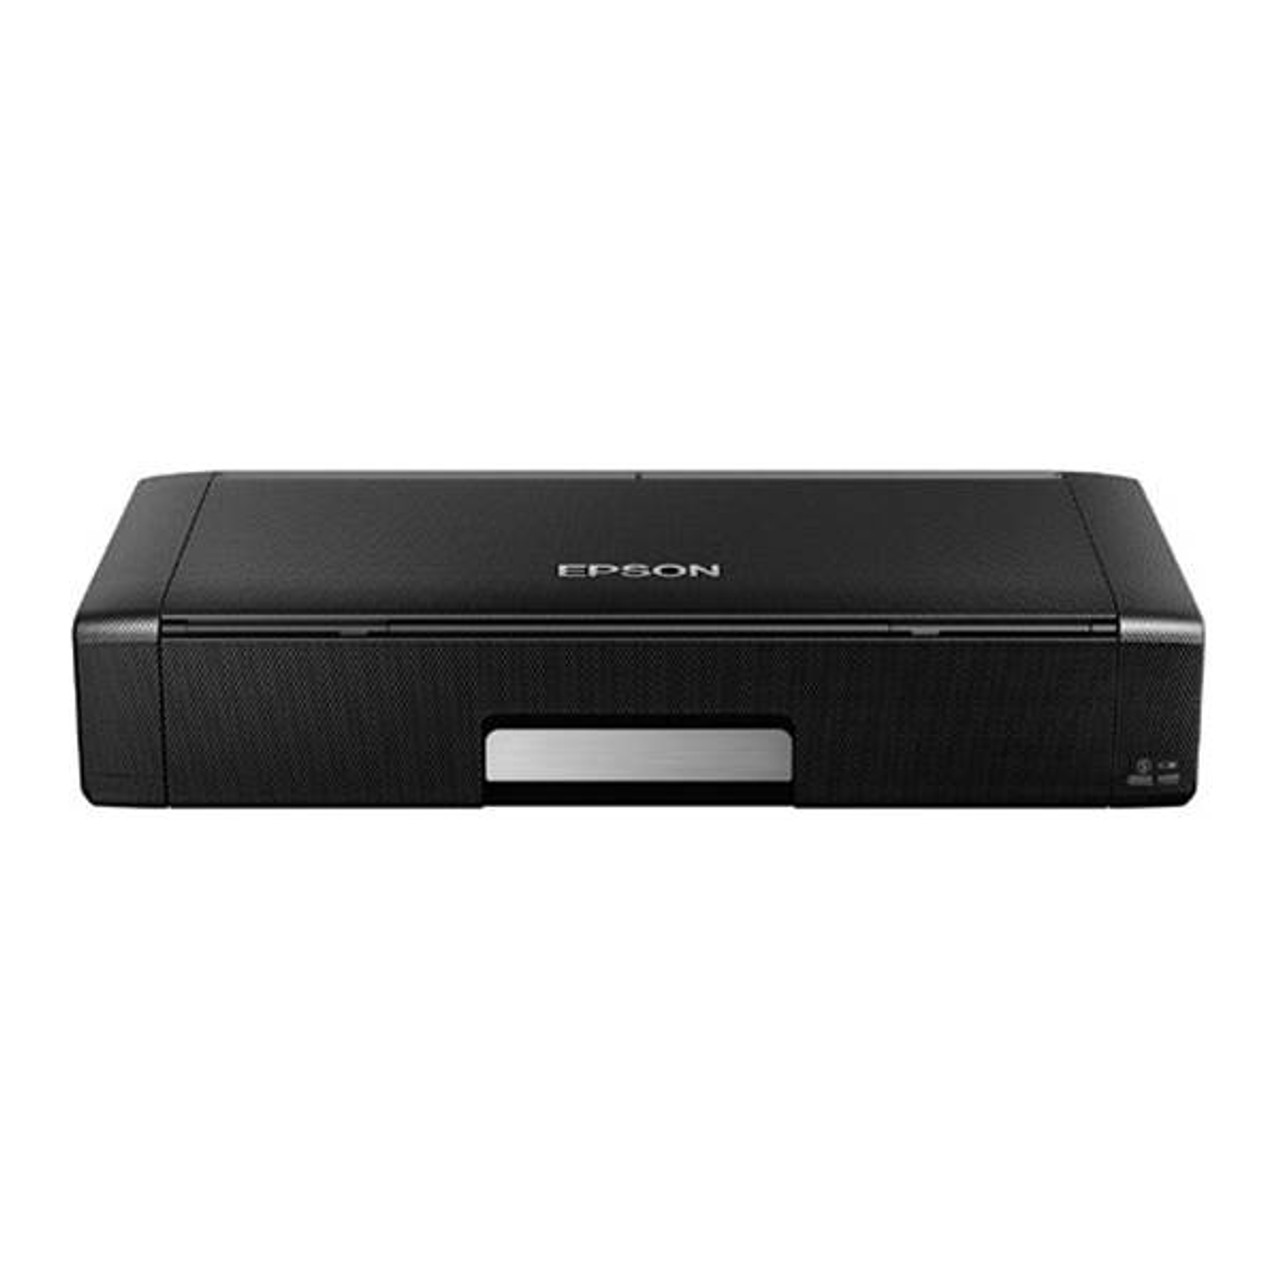 Product image for Epson WorkForce WF-100 A4 Colour Wireless Mobile Inkjet Printer   CX Computer Superstore